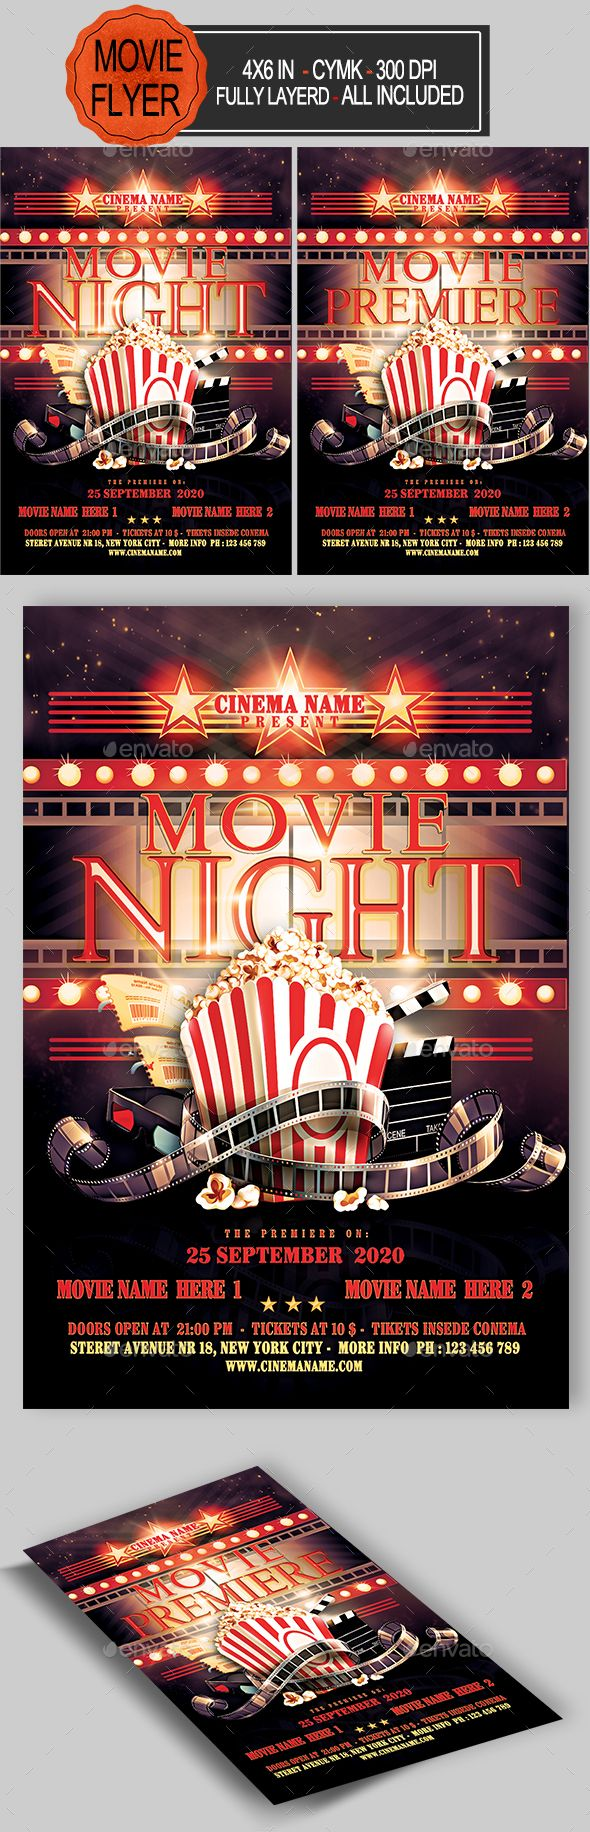 #Movie Night #Flyer   #Events Flyers